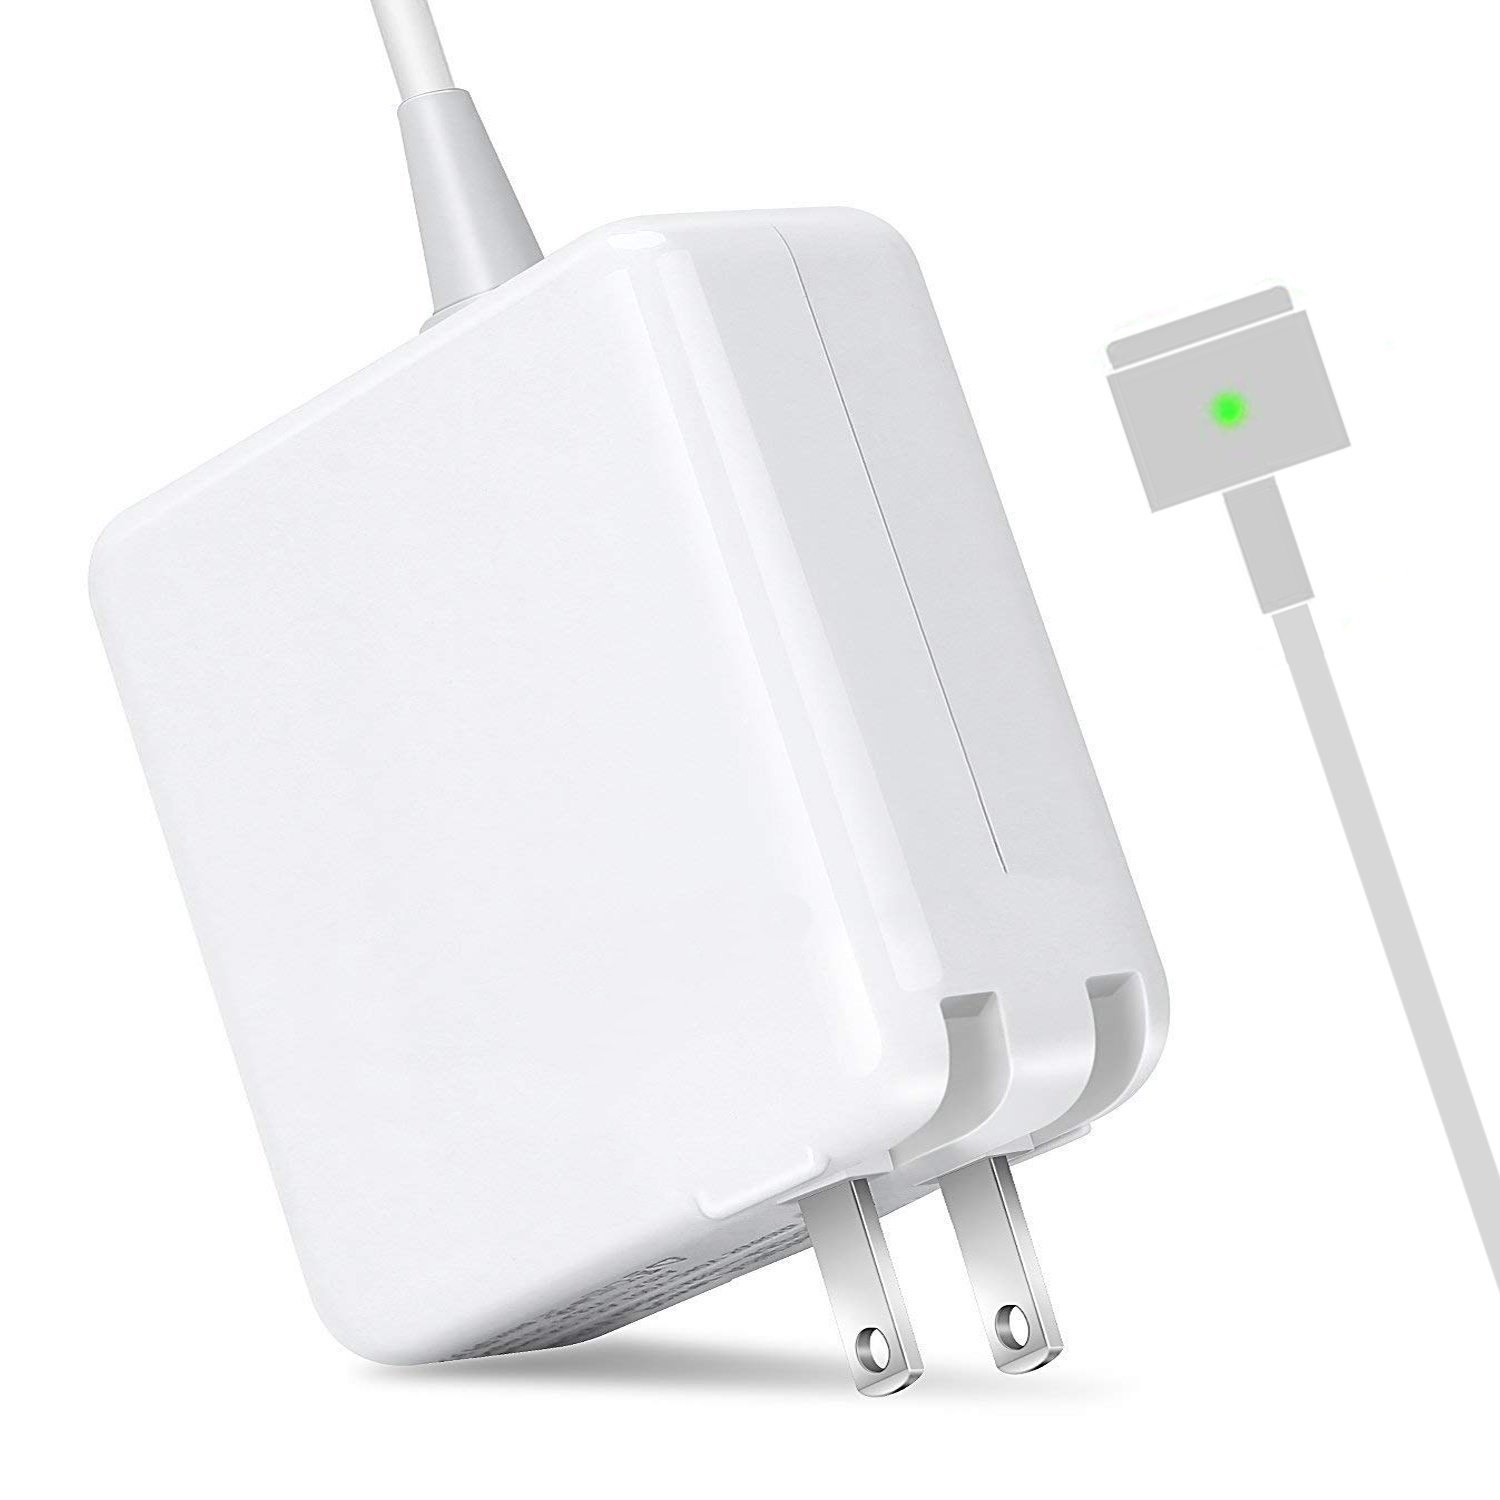 MOFANG FAMILY Macbook Air Charger, Replacement 45W Magsafe 2 T-tip Power Adapter for Apple Macbook Air 11 inch and 13-inch (45TM2)